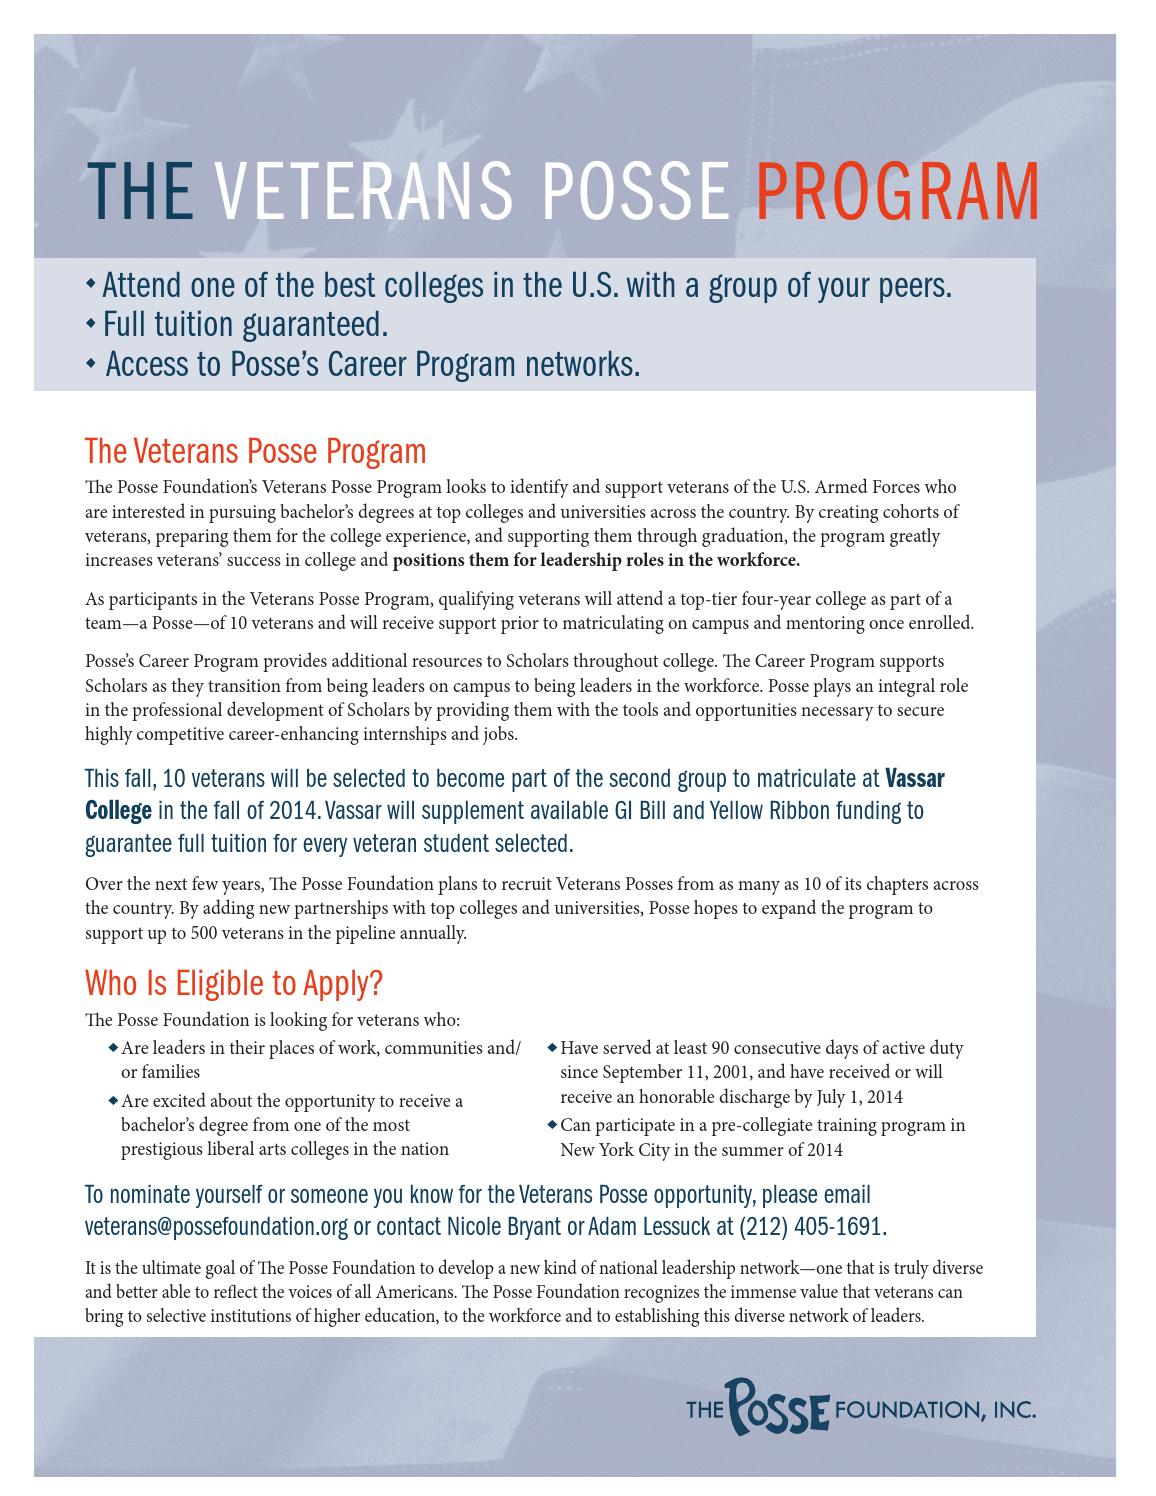 2013 veterans posse one pager by J1 Education - issuu